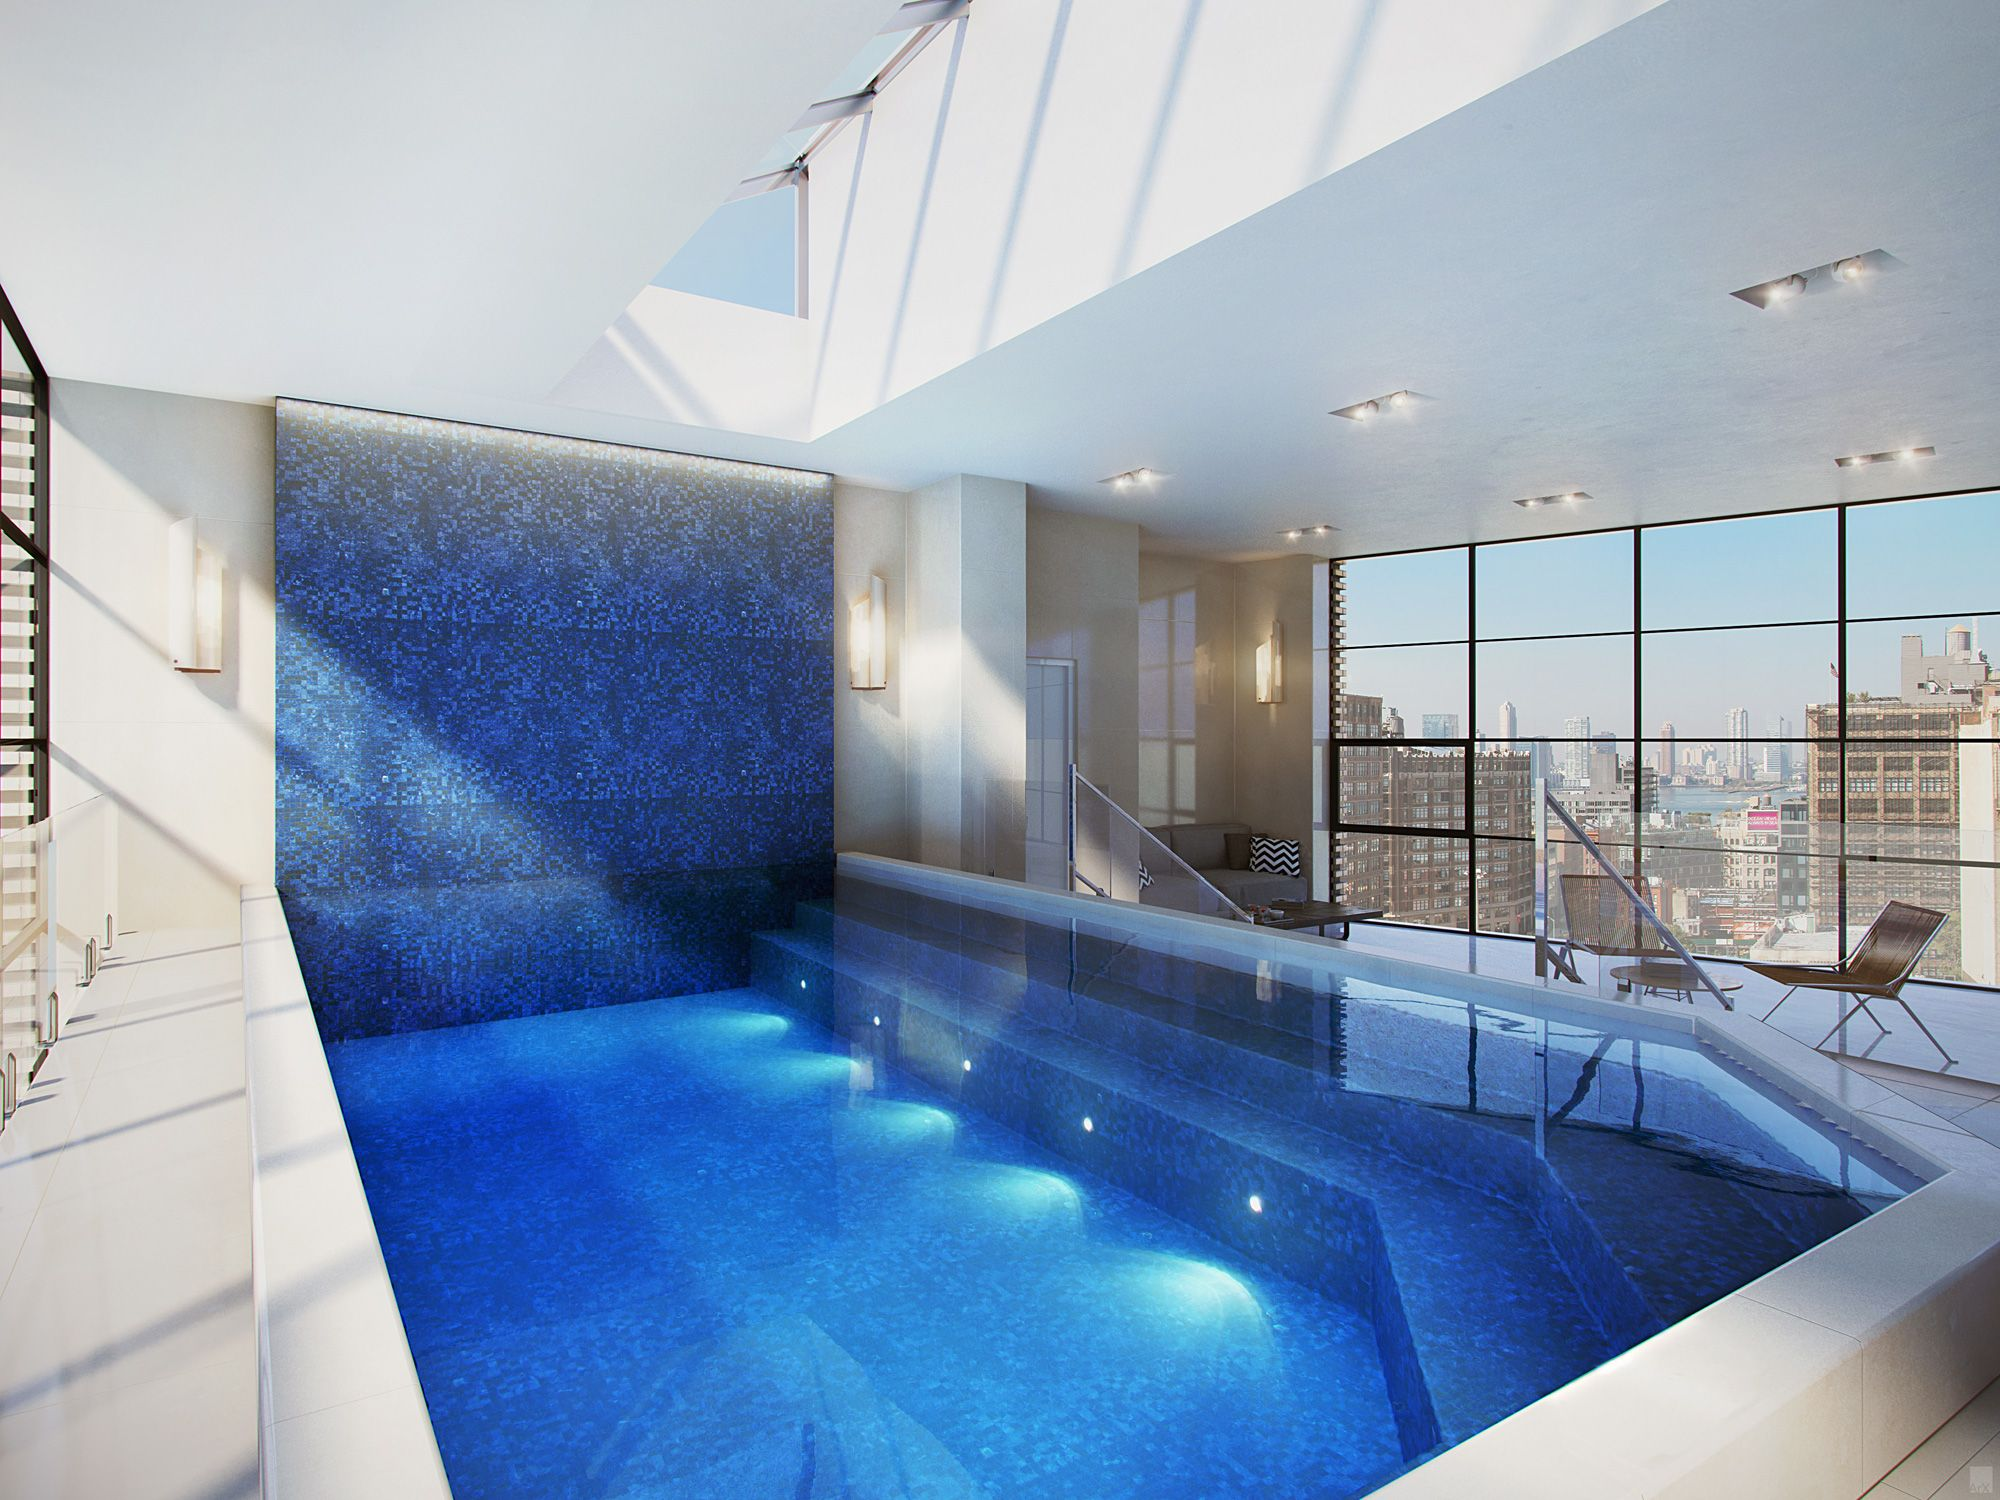 Vacation Resorts Real Estate Marketing Pent House Private Pool Apartment